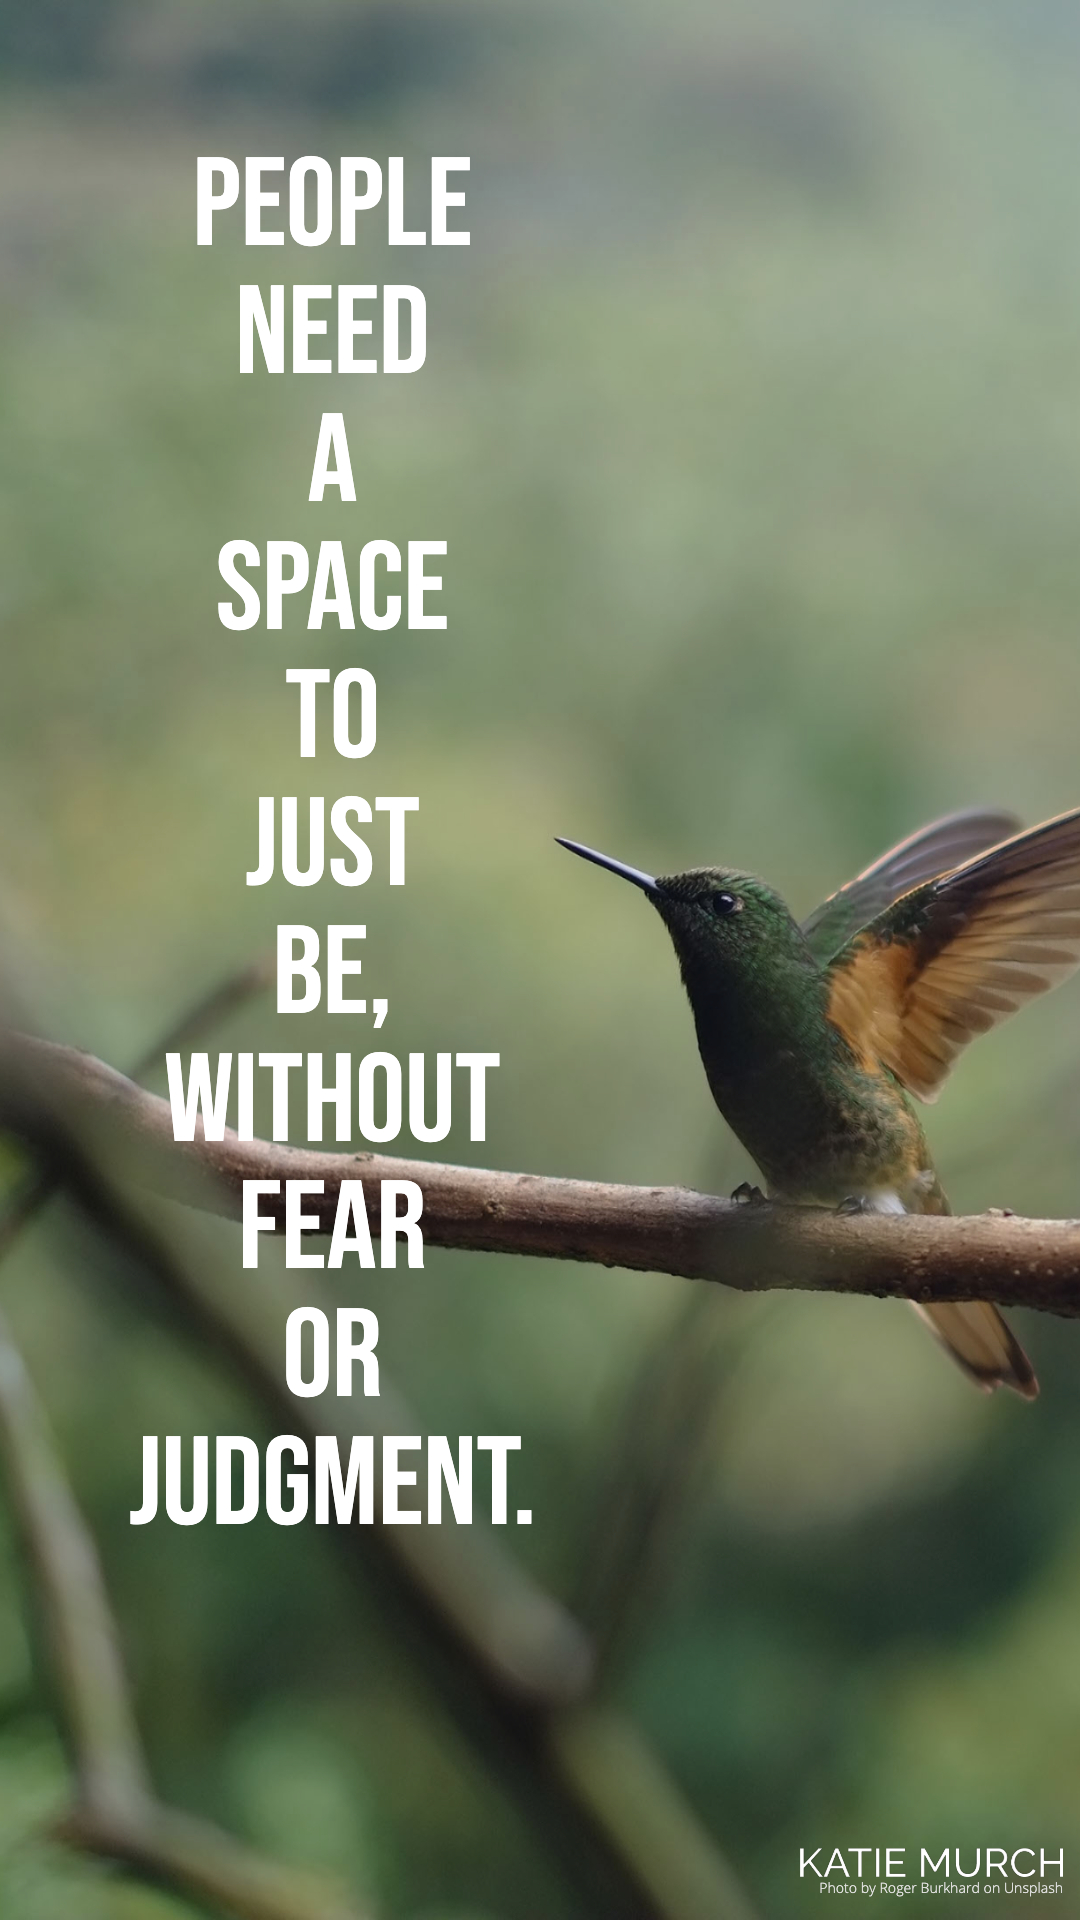 Quote is on the left of the photo while in the back is a green and brown hummingbird with its wings open perched on a brown branch. Katie Murch and photo credit is on the bottom right of the image.